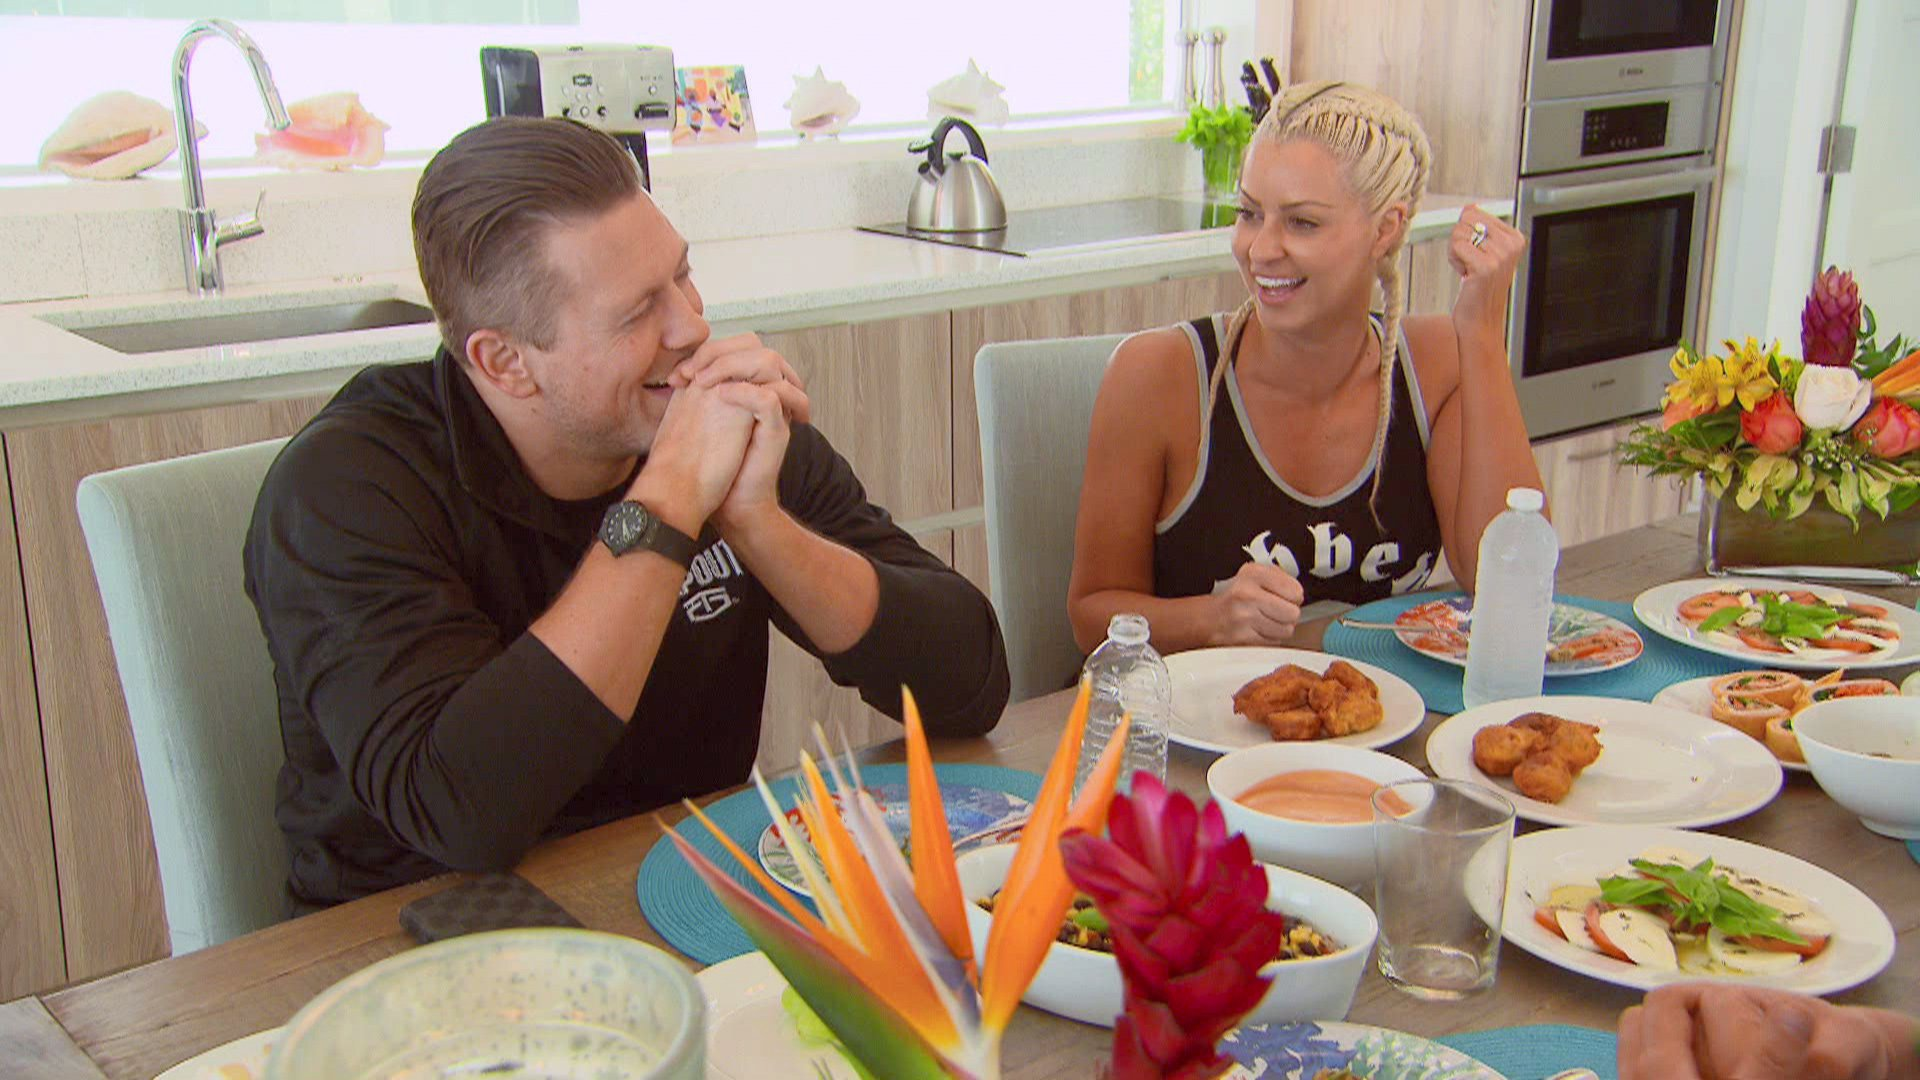 While Miz is preoccupied with spear-fishing, Maryse demands a romantic swim with the island's native pigs.